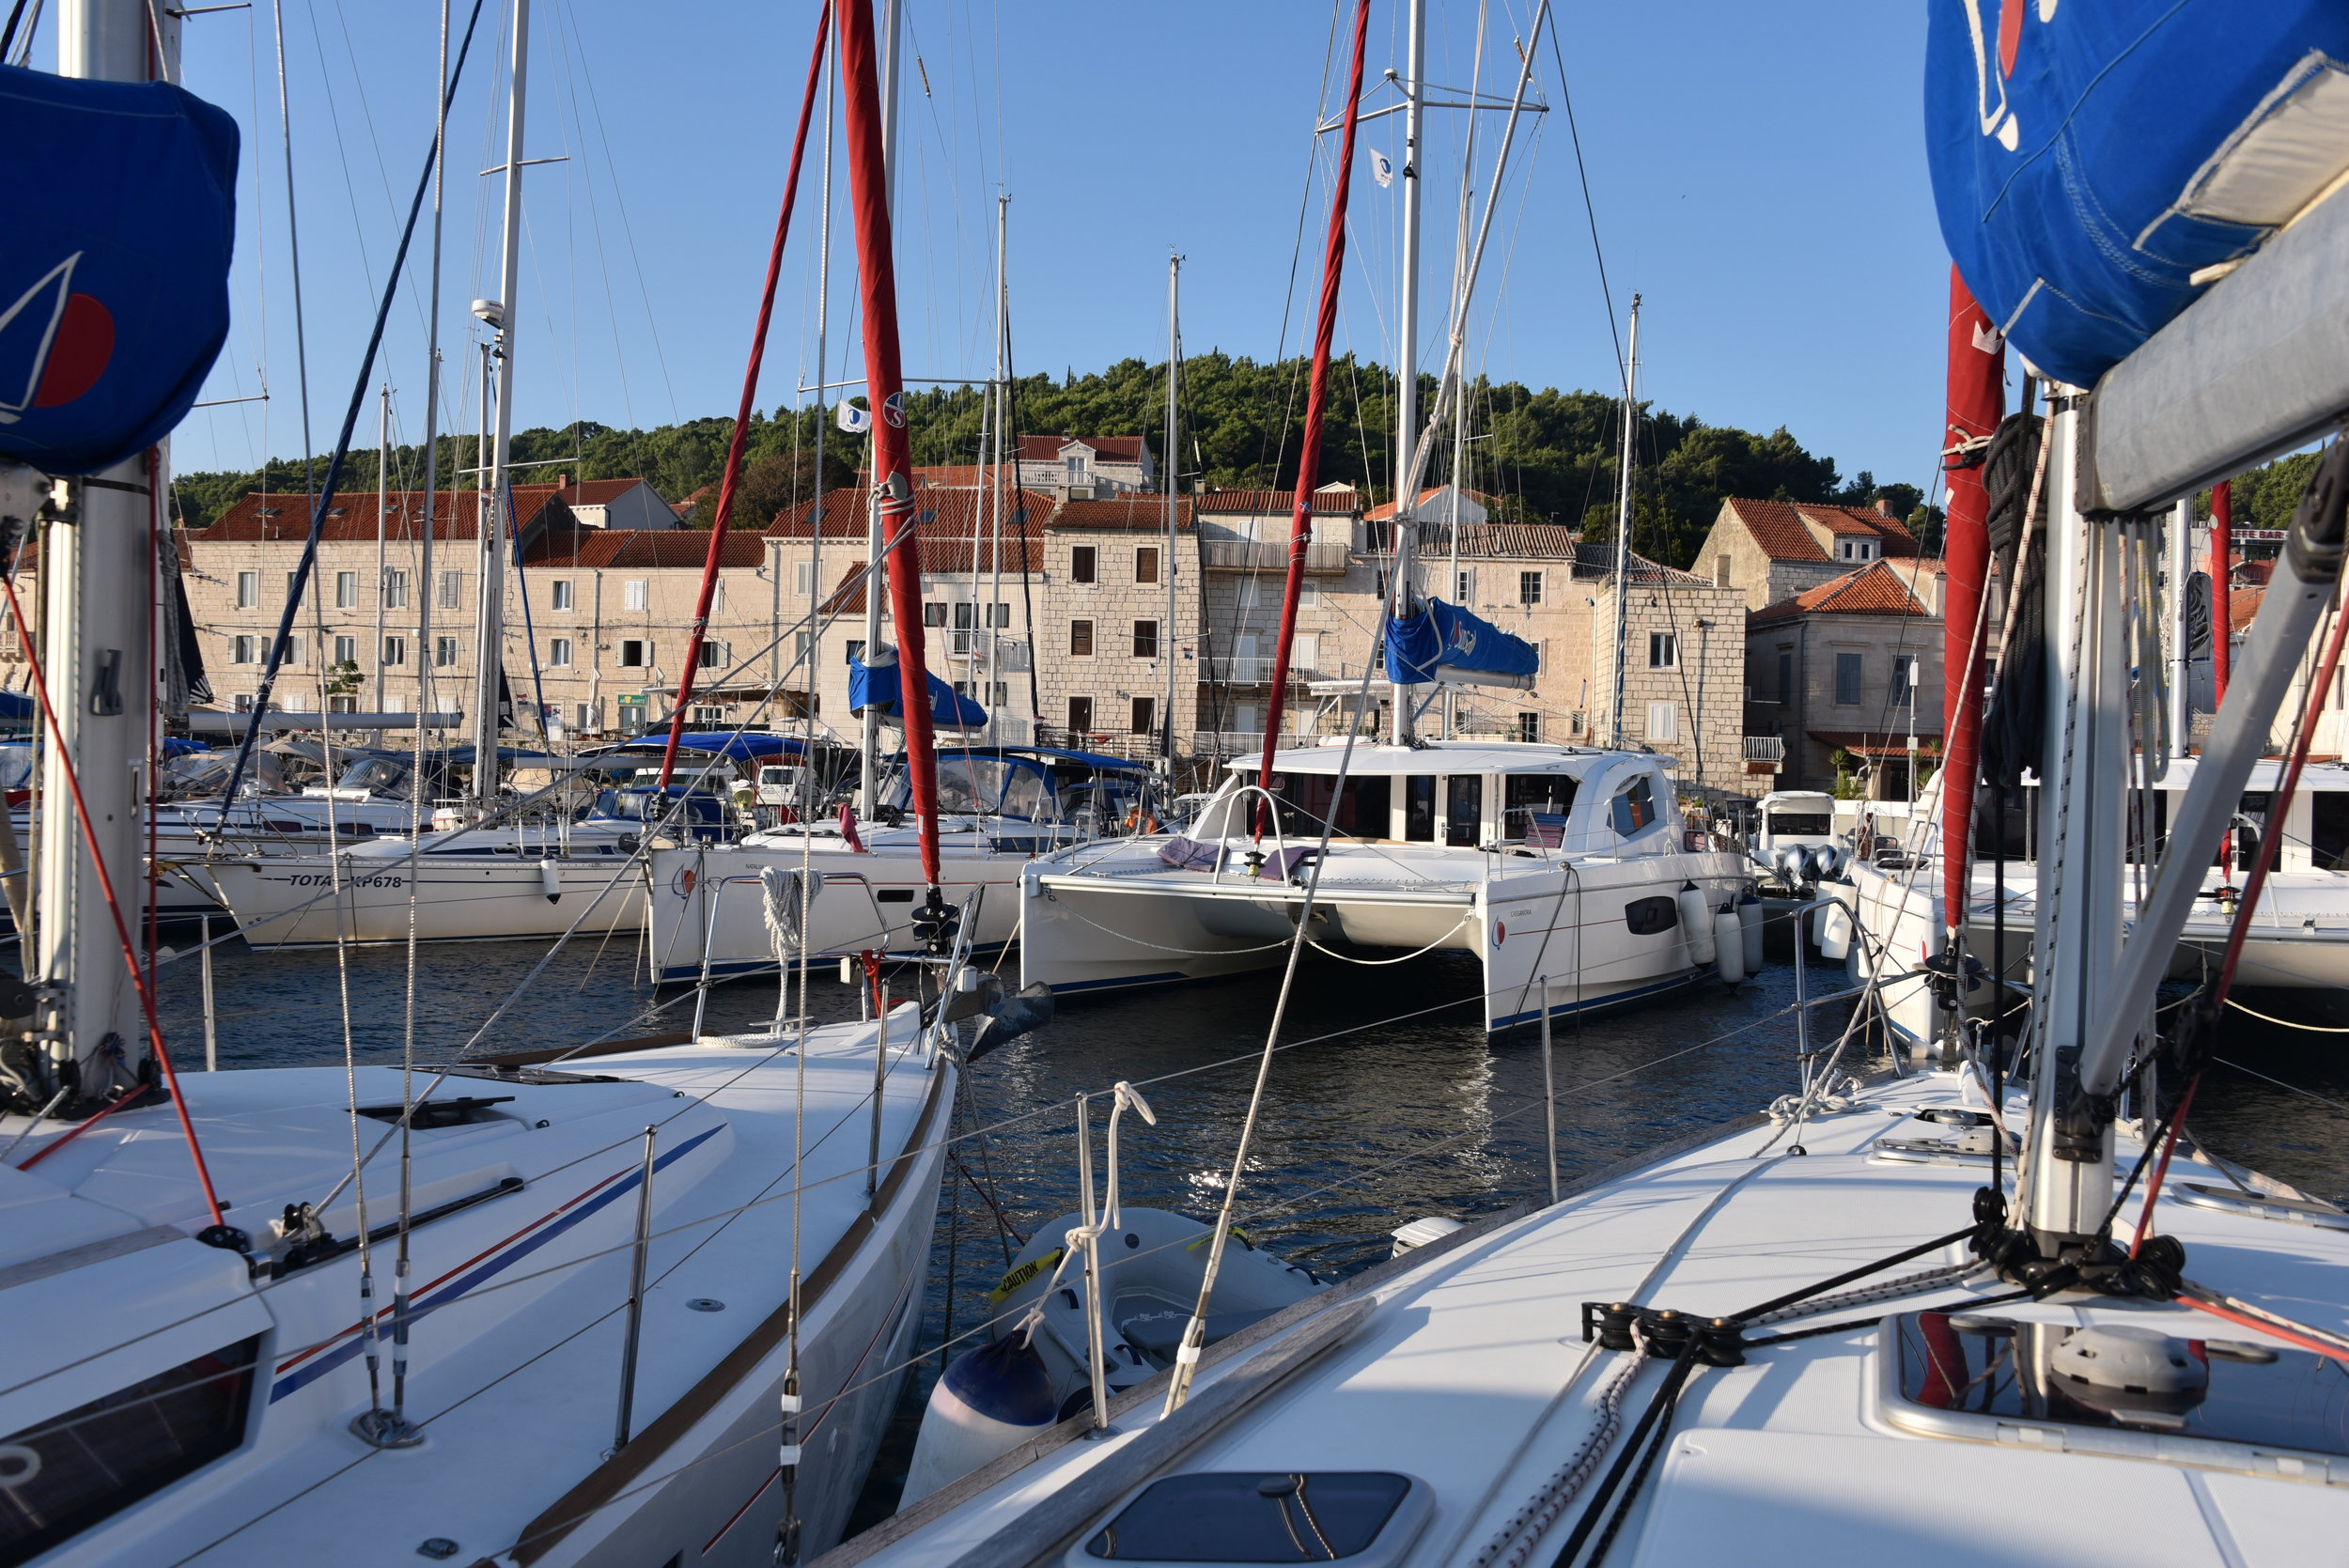 Very close quarters in the marina at Korcula! We used a spring line in our departure with wind blowing 10 knots. The spring line enabled us to make a very sharp turn to the left, before we hit those big catamarans staring us down. :-)